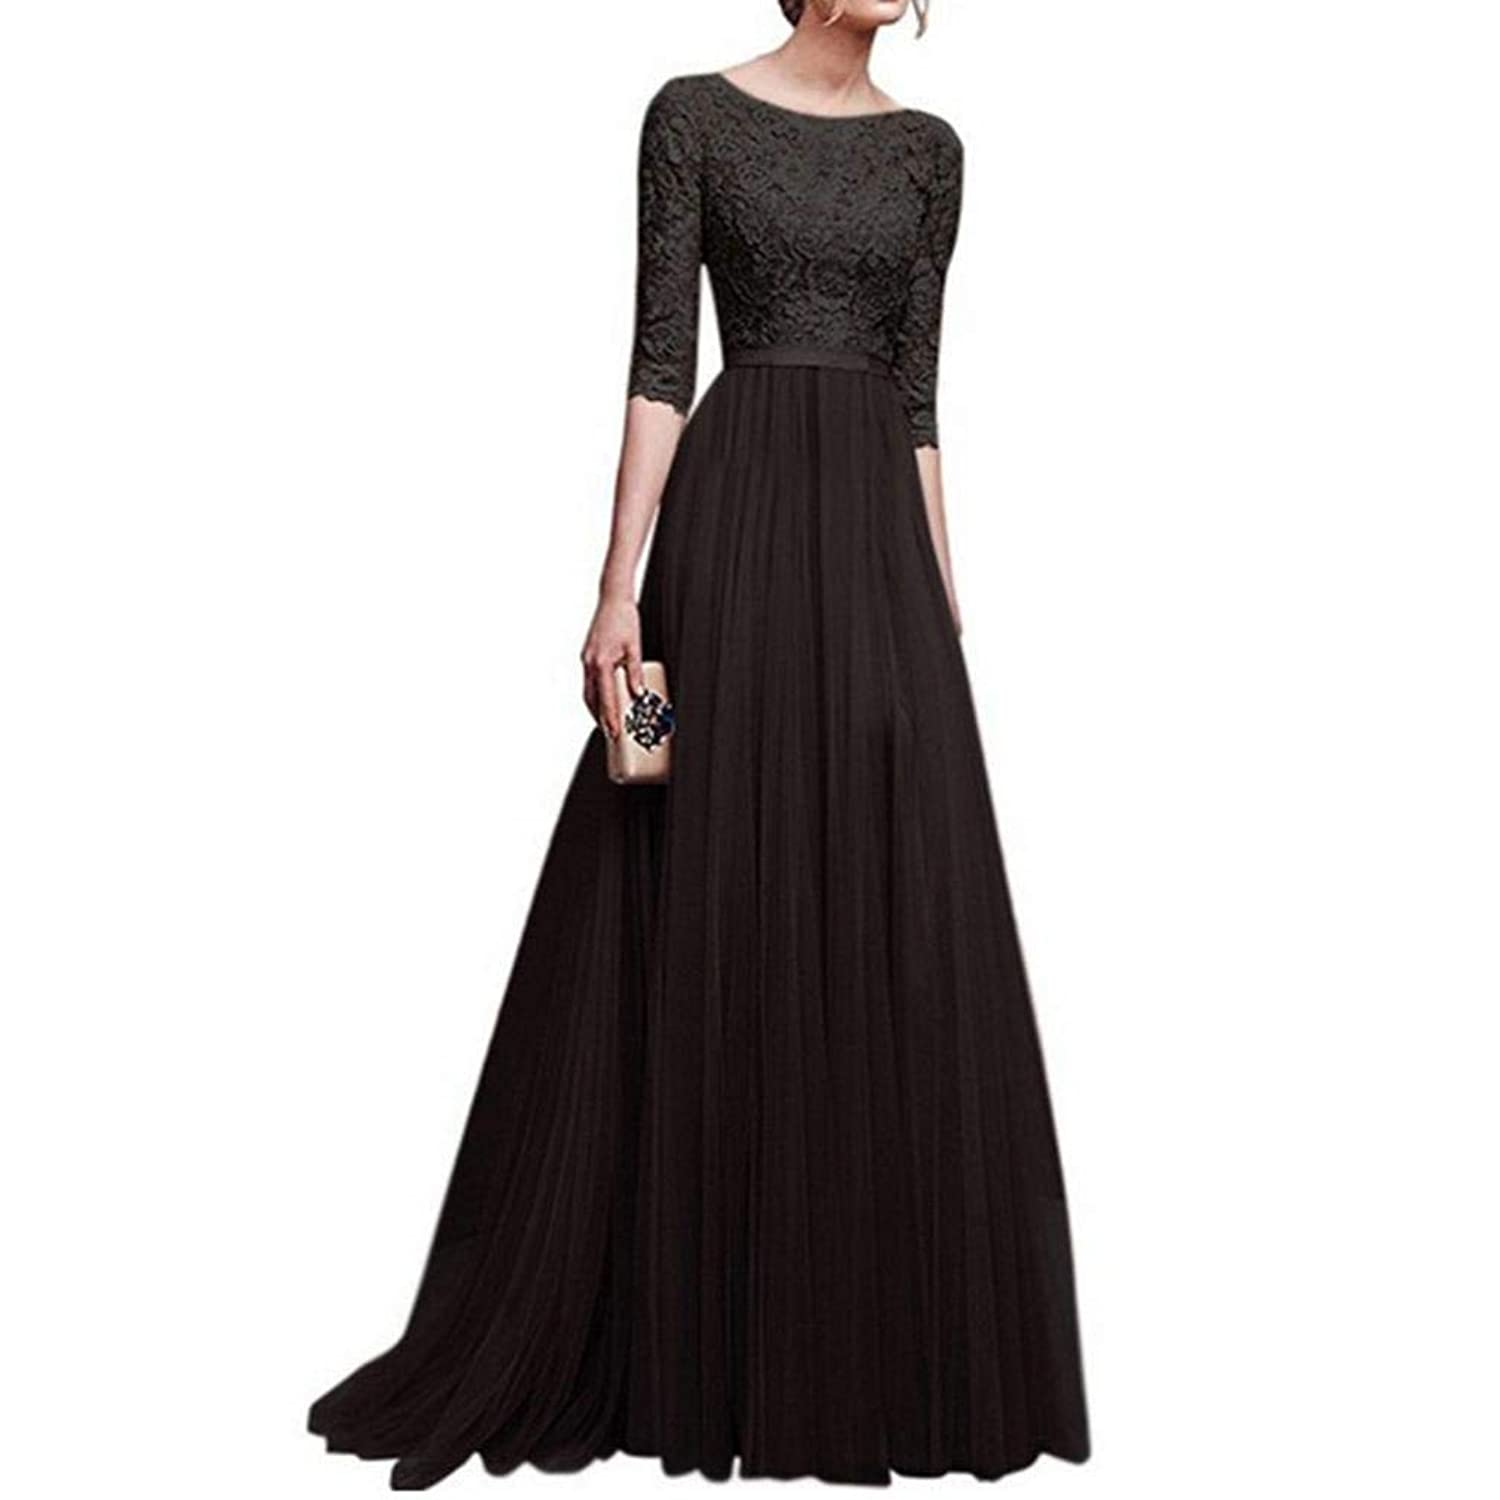 0b639fe9735 Top 10 wholesale Amazon Designer Gown - Chinabrands.com